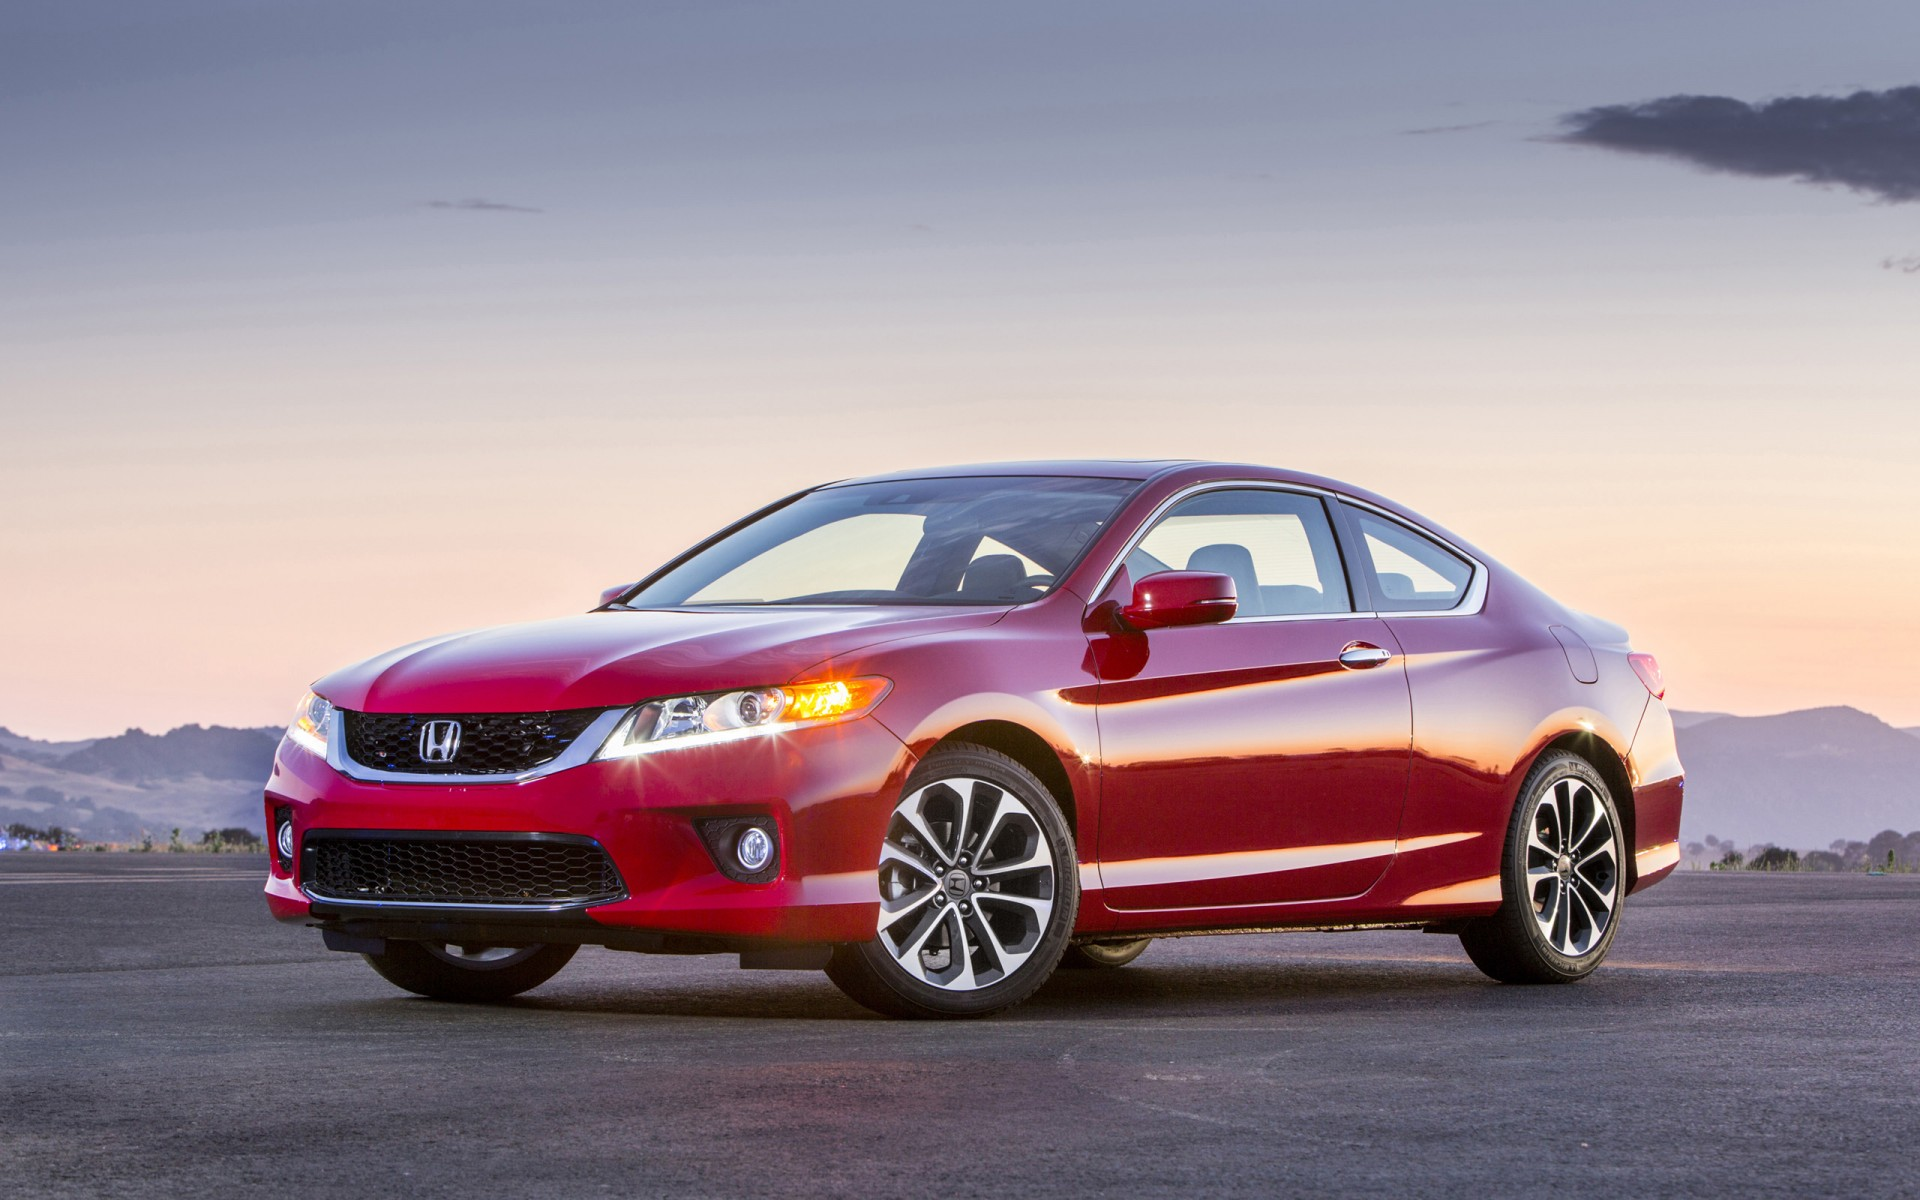 2013 honda accord ex l v6 coupe wallpaper hd car. Black Bedroom Furniture Sets. Home Design Ideas